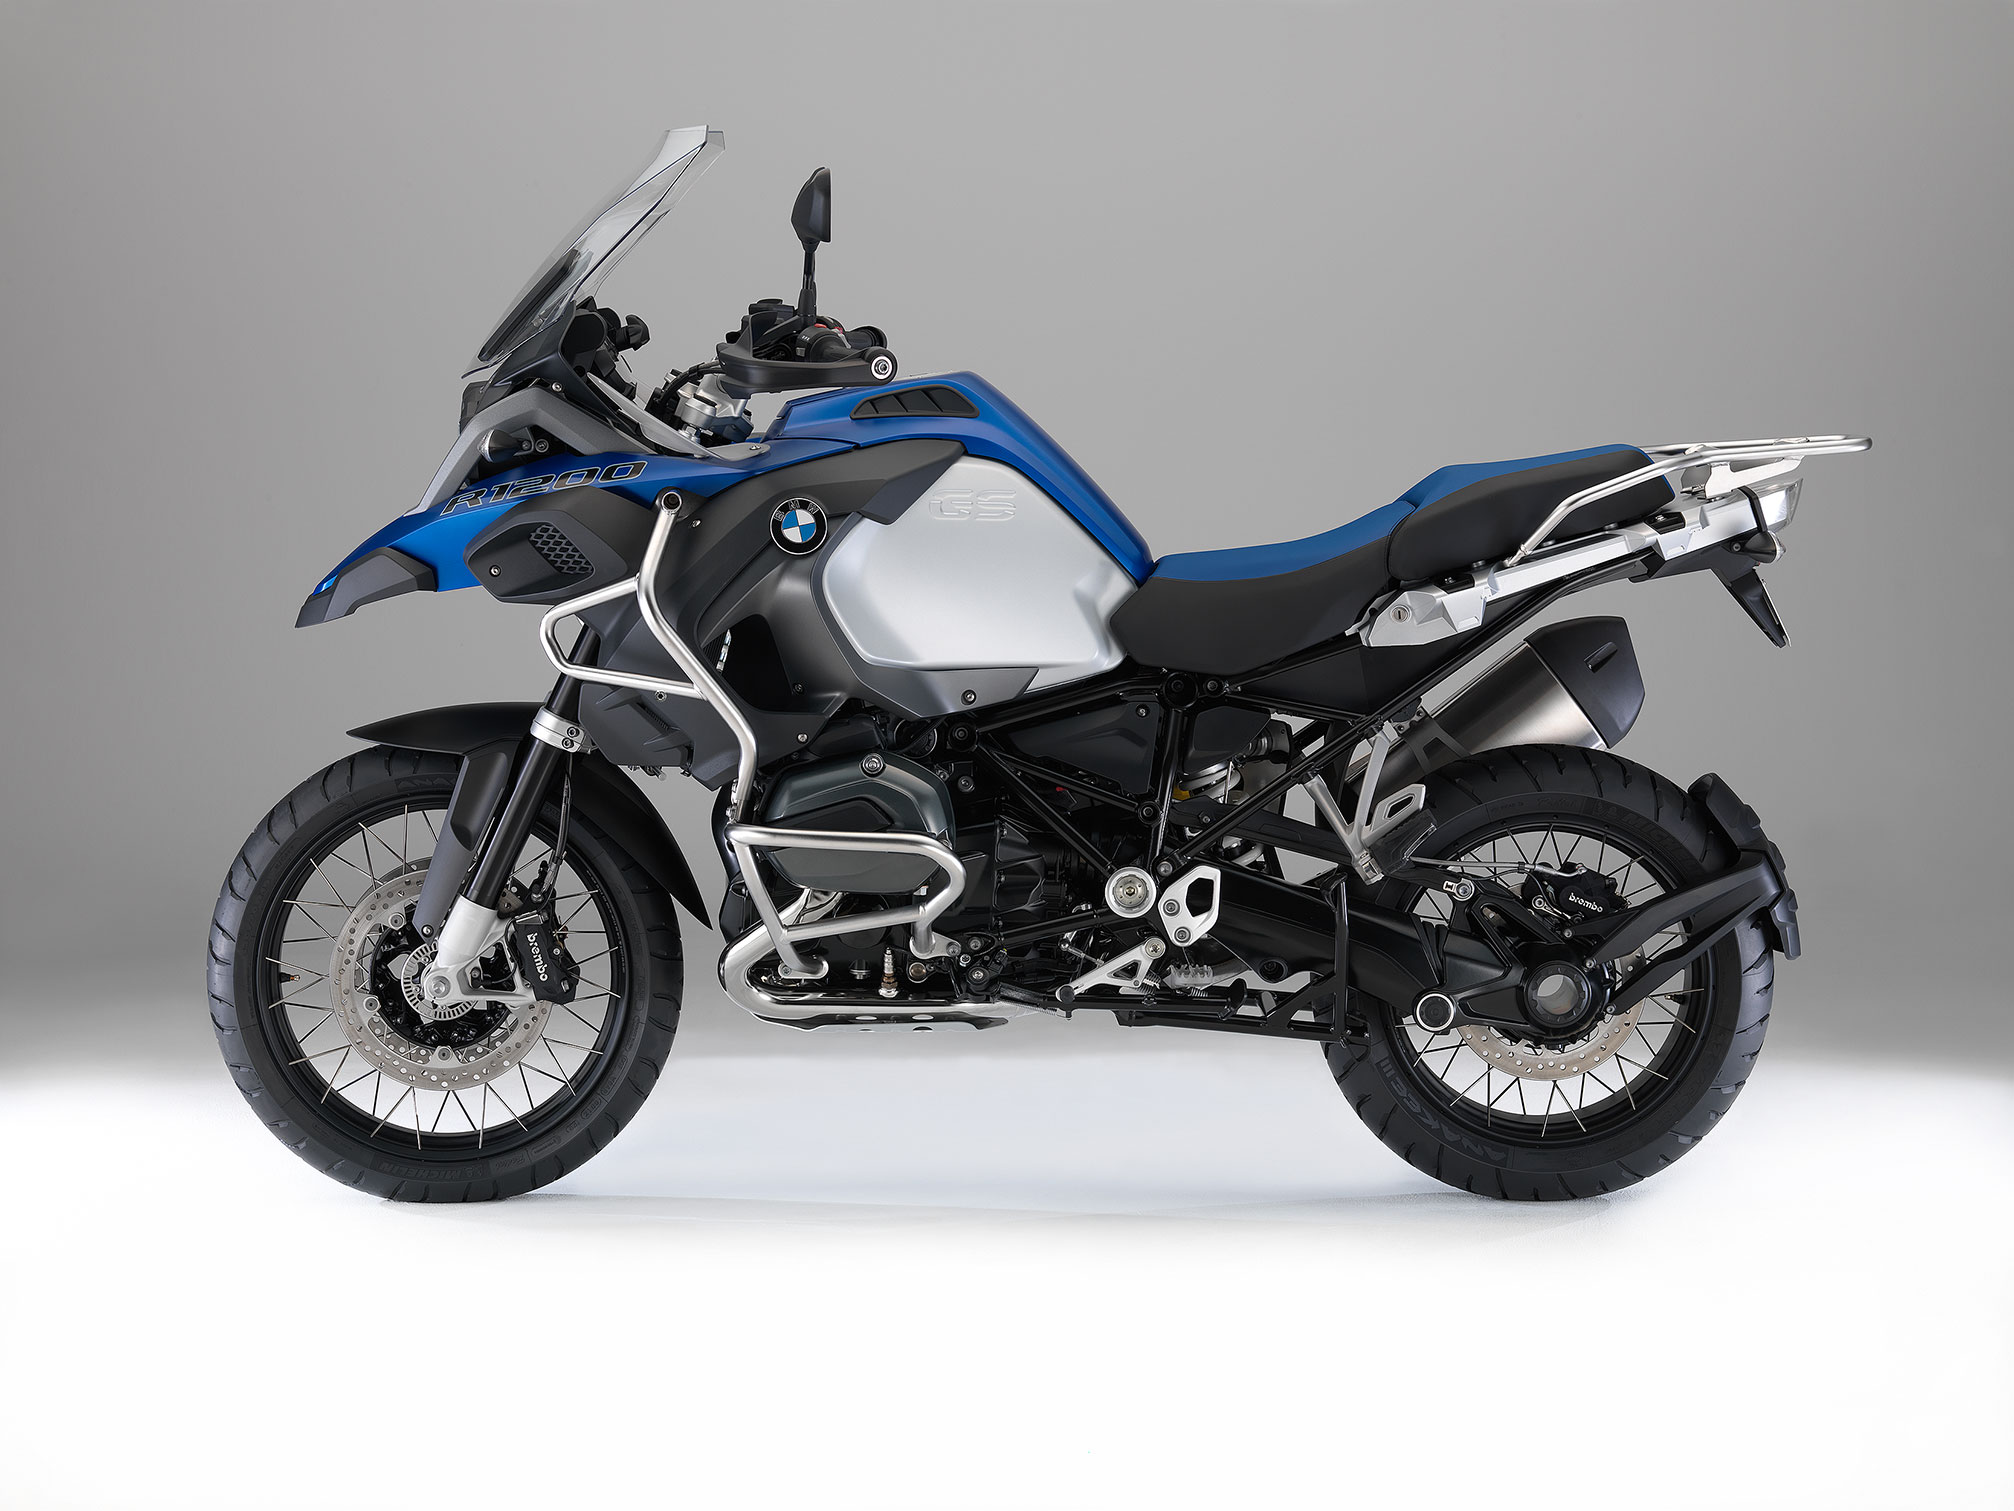 bmw r 1200 gs adventure specs 2013 2014 autoevolution. Black Bedroom Furniture Sets. Home Design Ideas